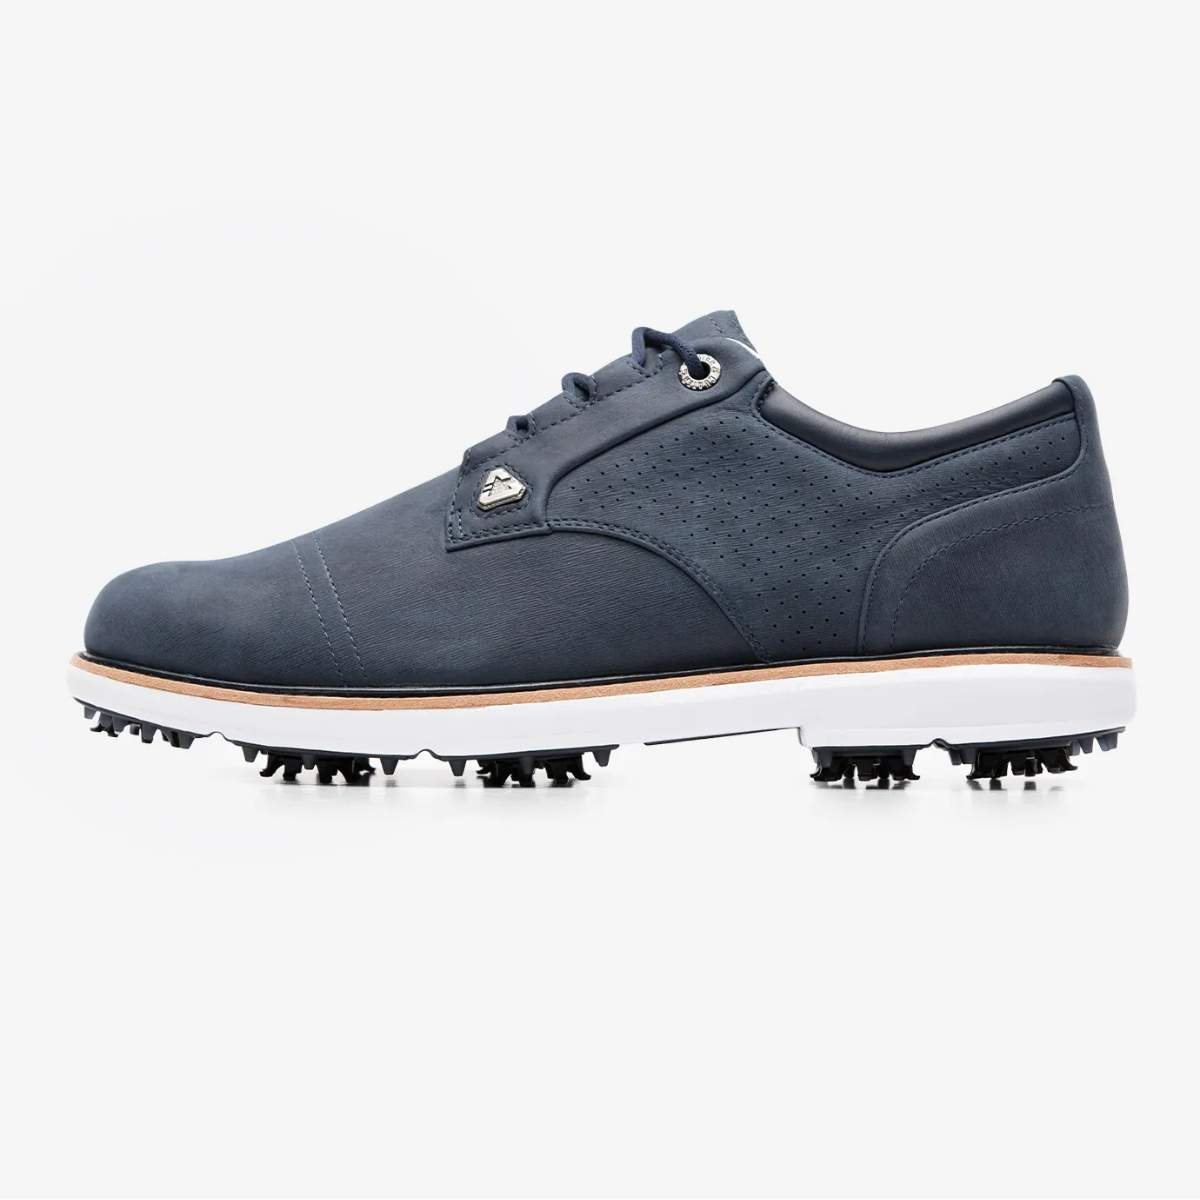 TravisMathew Cuater The Legend Navy Golf Shoe